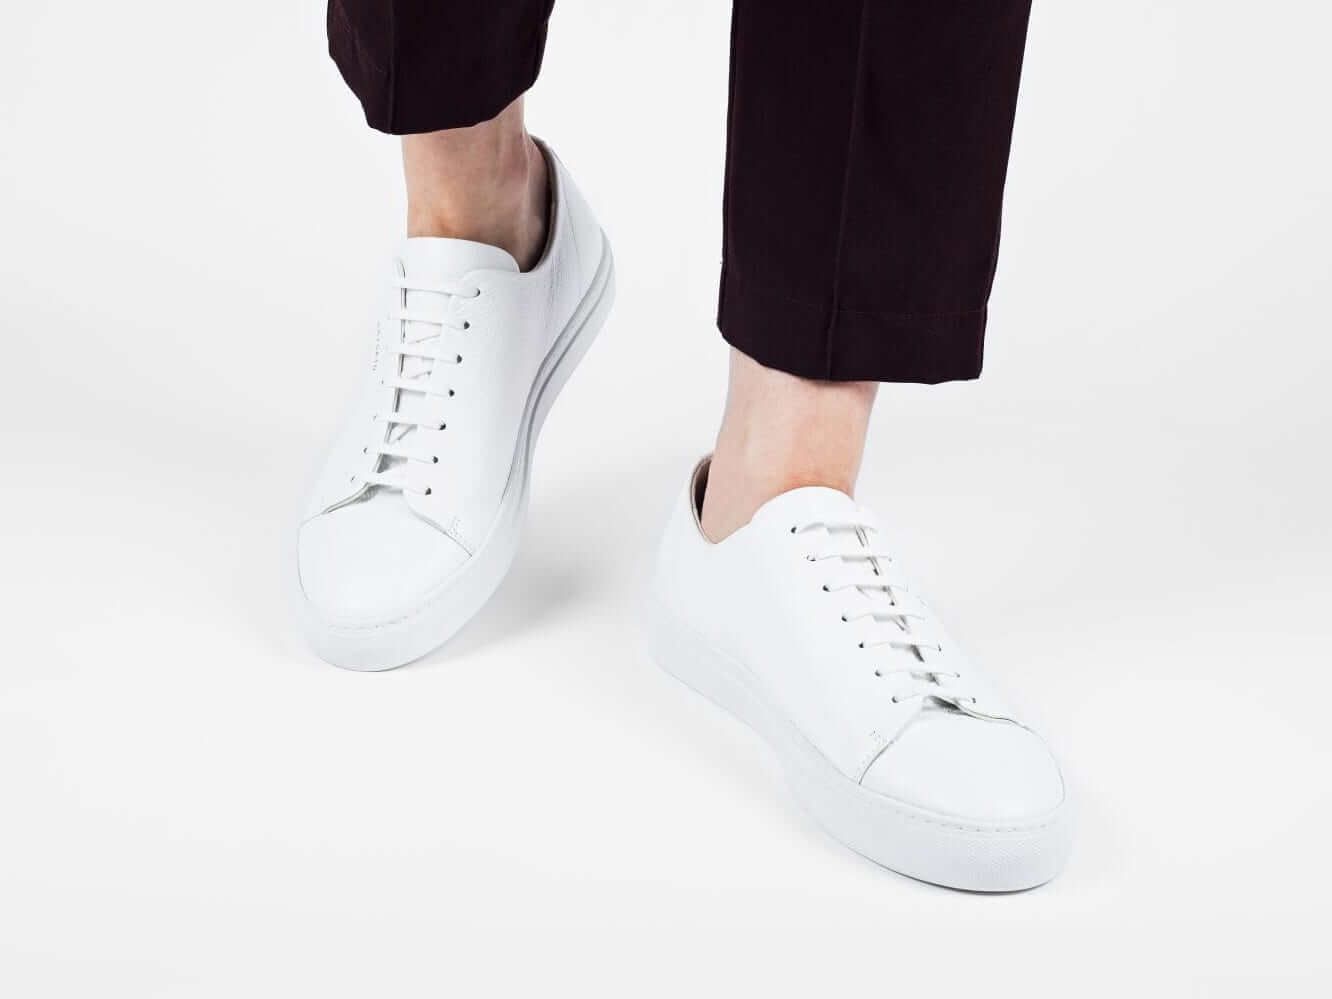 5 Pairs of Women's White Sneakers that